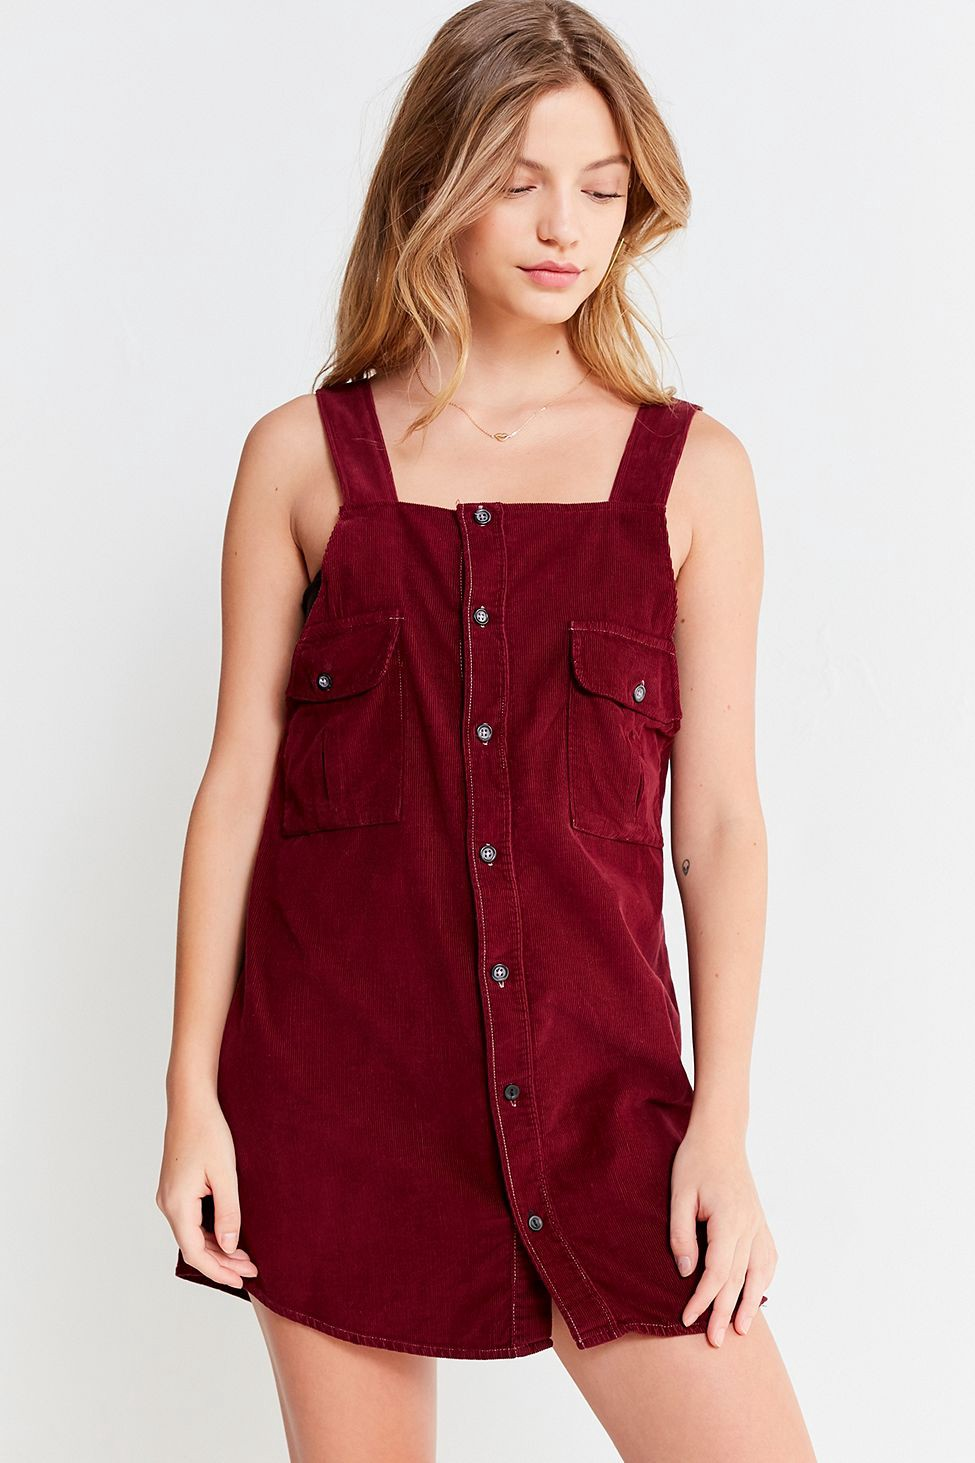 36a470a1b54 Urban Outfitters Renewal Recycled Corduroy Pinafore Dress - M Navy ...